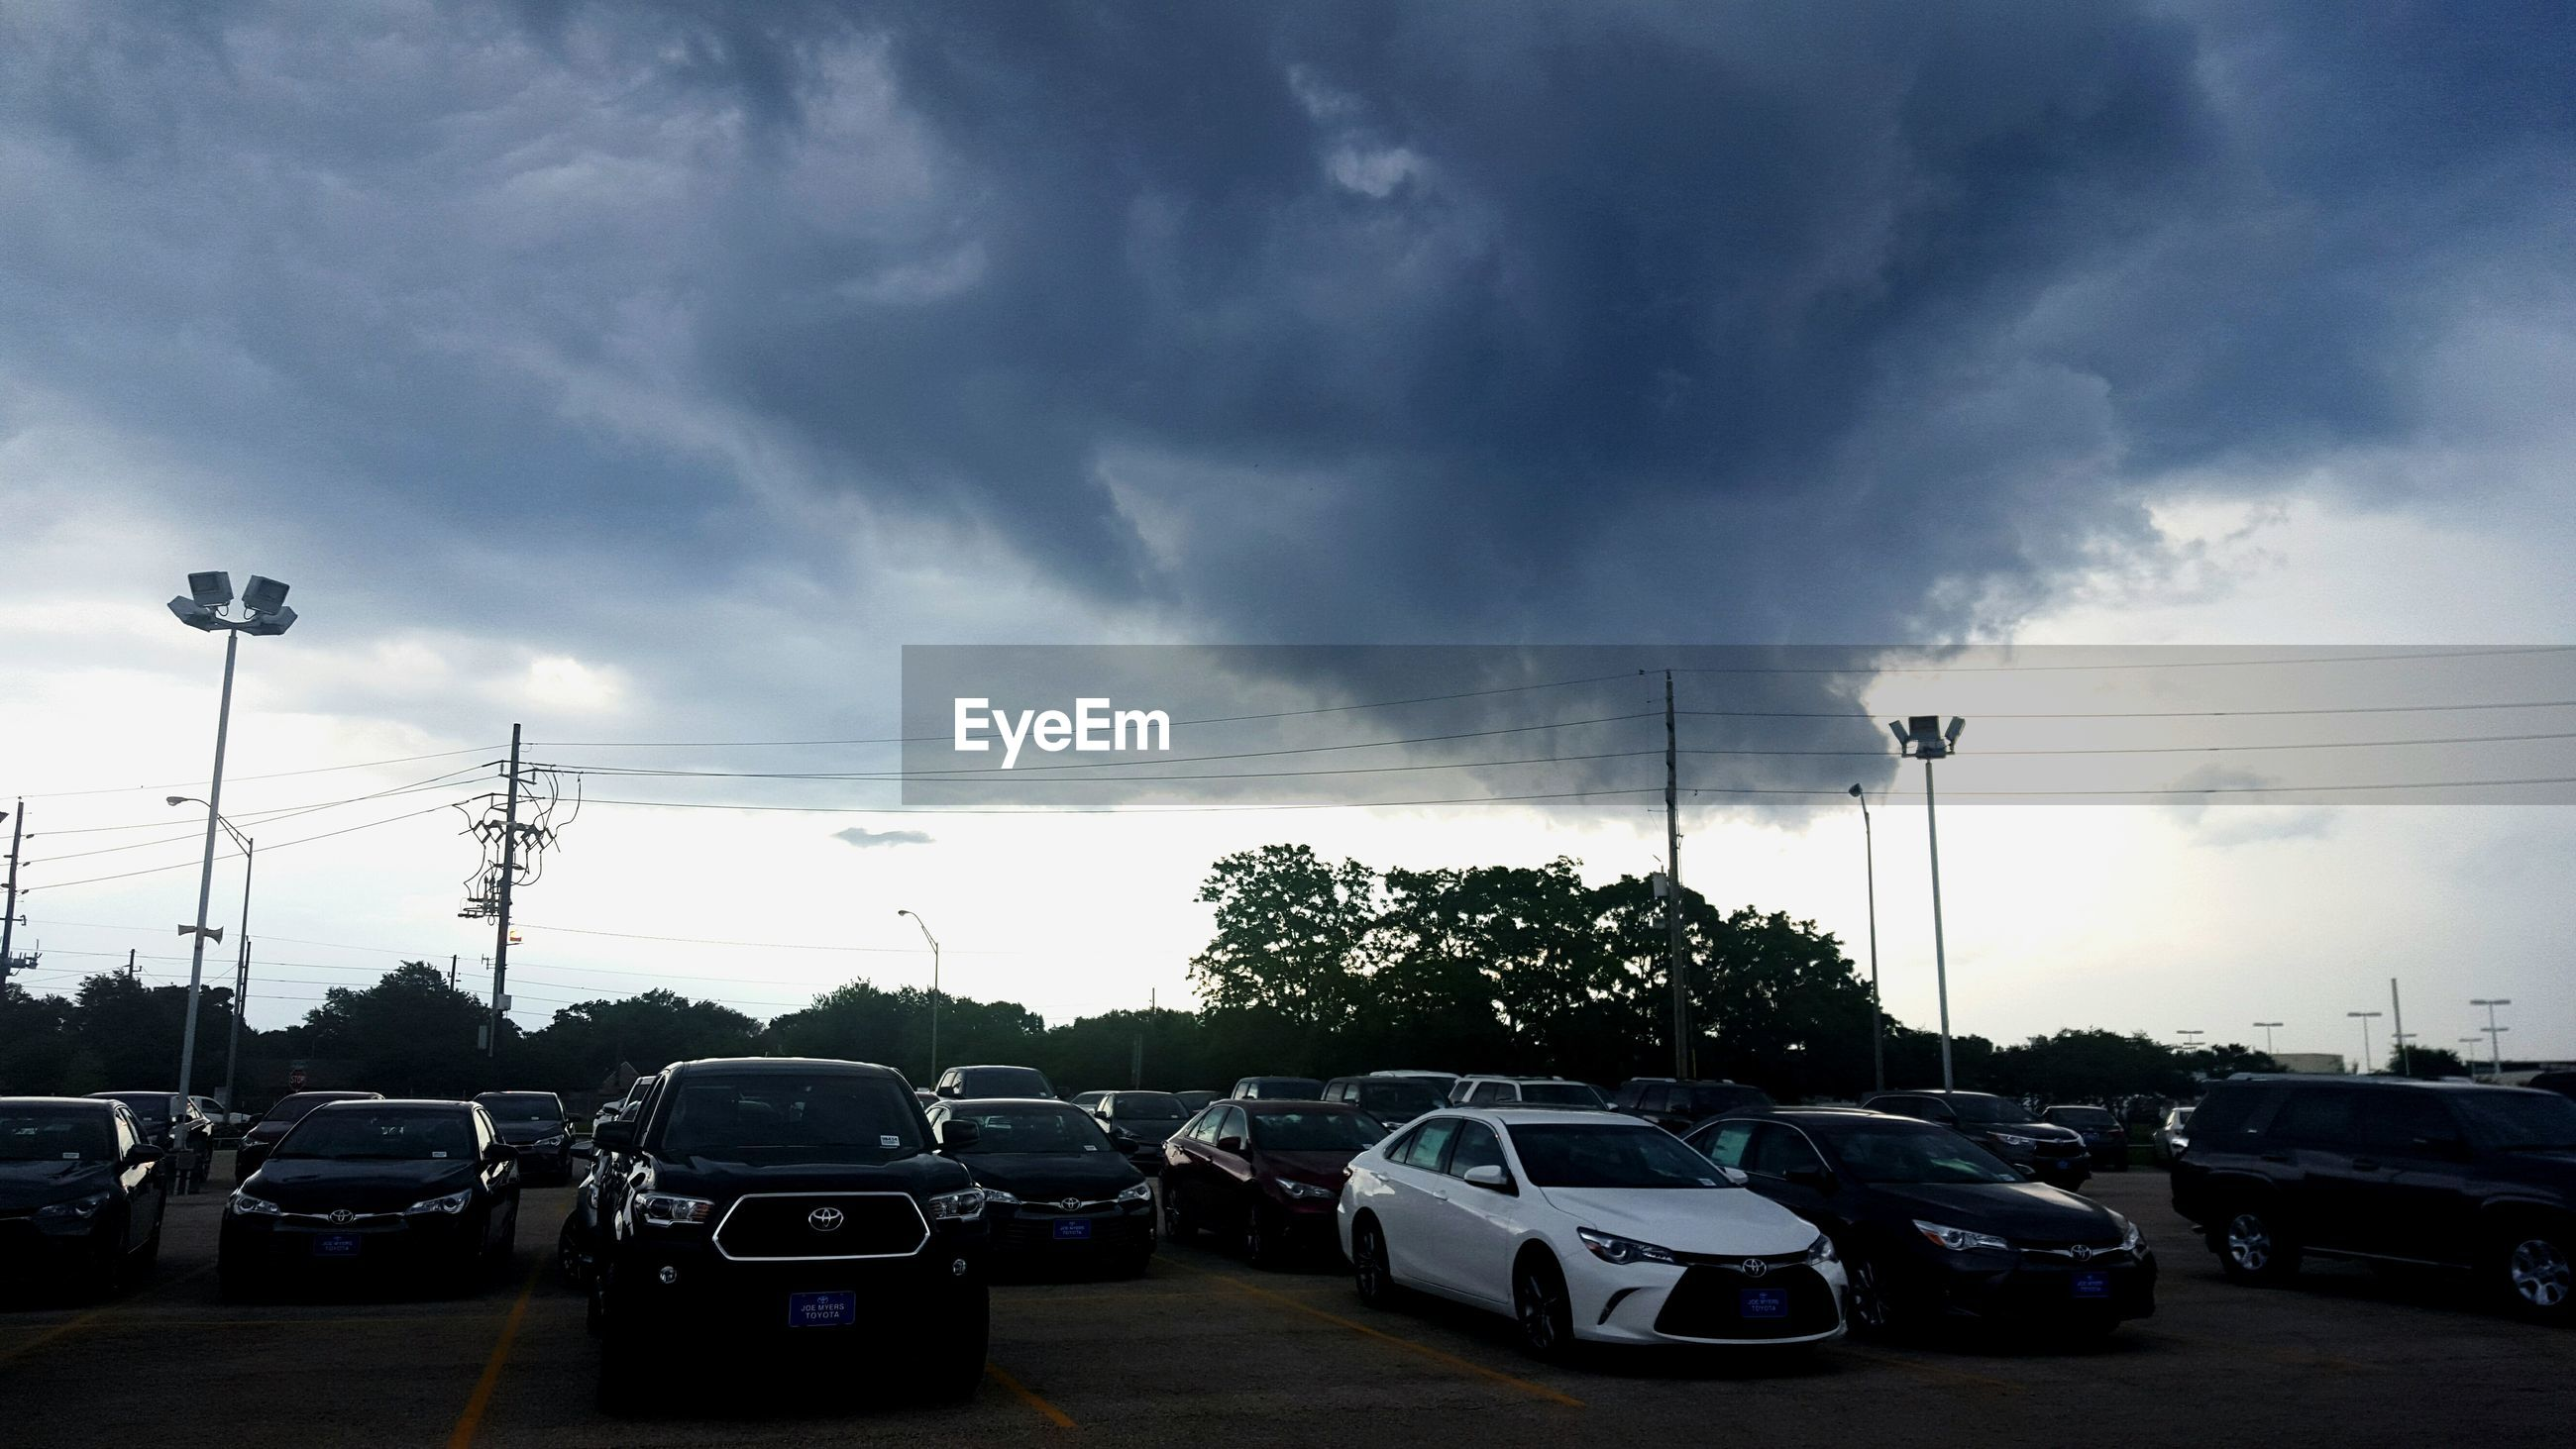 transportation, car, land vehicle, mode of transport, sky, cloud - sky, street, street light, road, cloudy, parking, parking lot, stationary, parked, cloud, traffic, travel, outdoors, in a row, weather